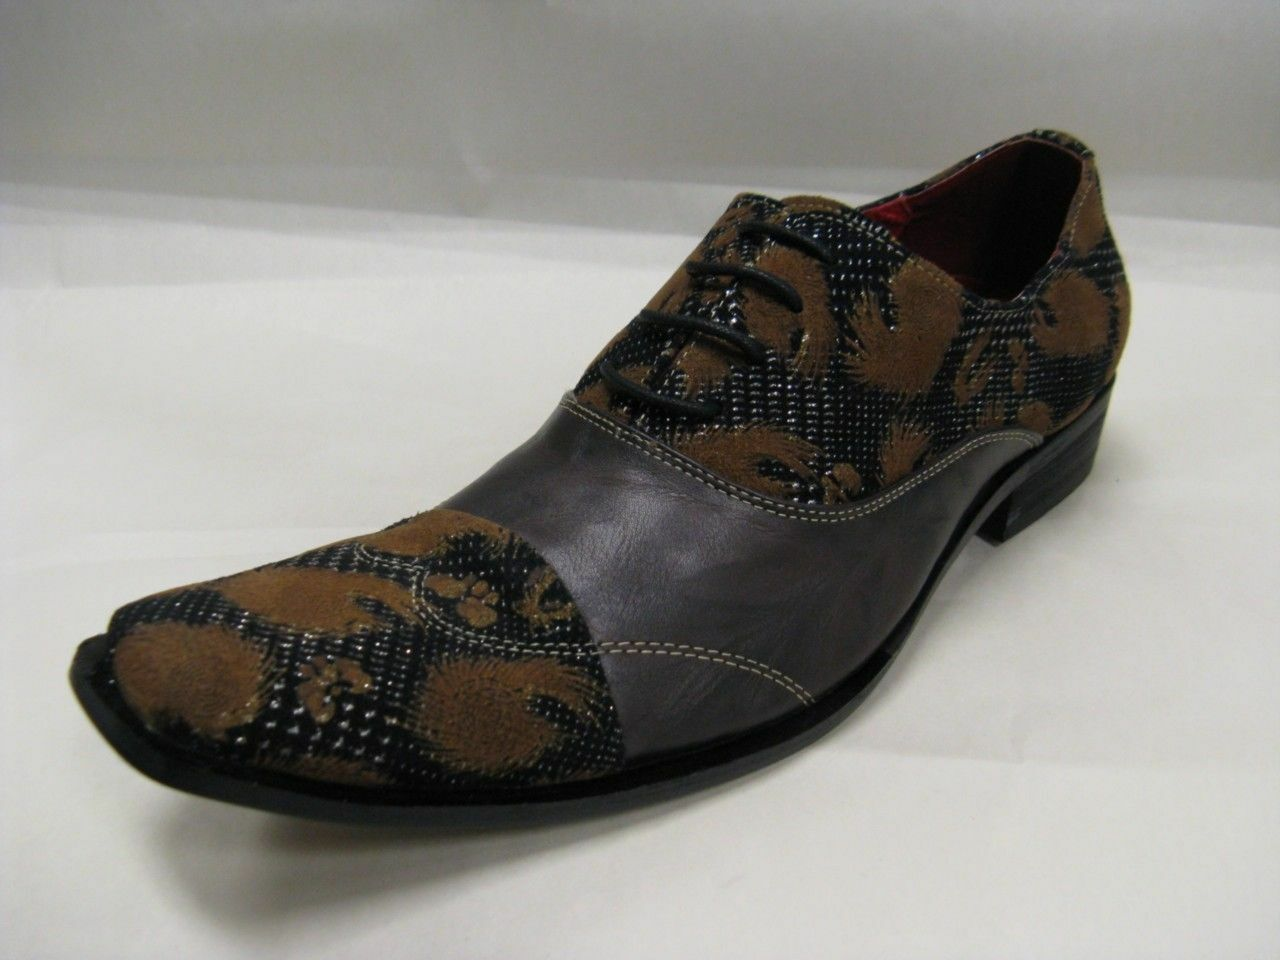 Scarpe casual da uomo  Fiesso New Brown with Leather and Fabric Cognac Flocking Design Shoes FI 8606